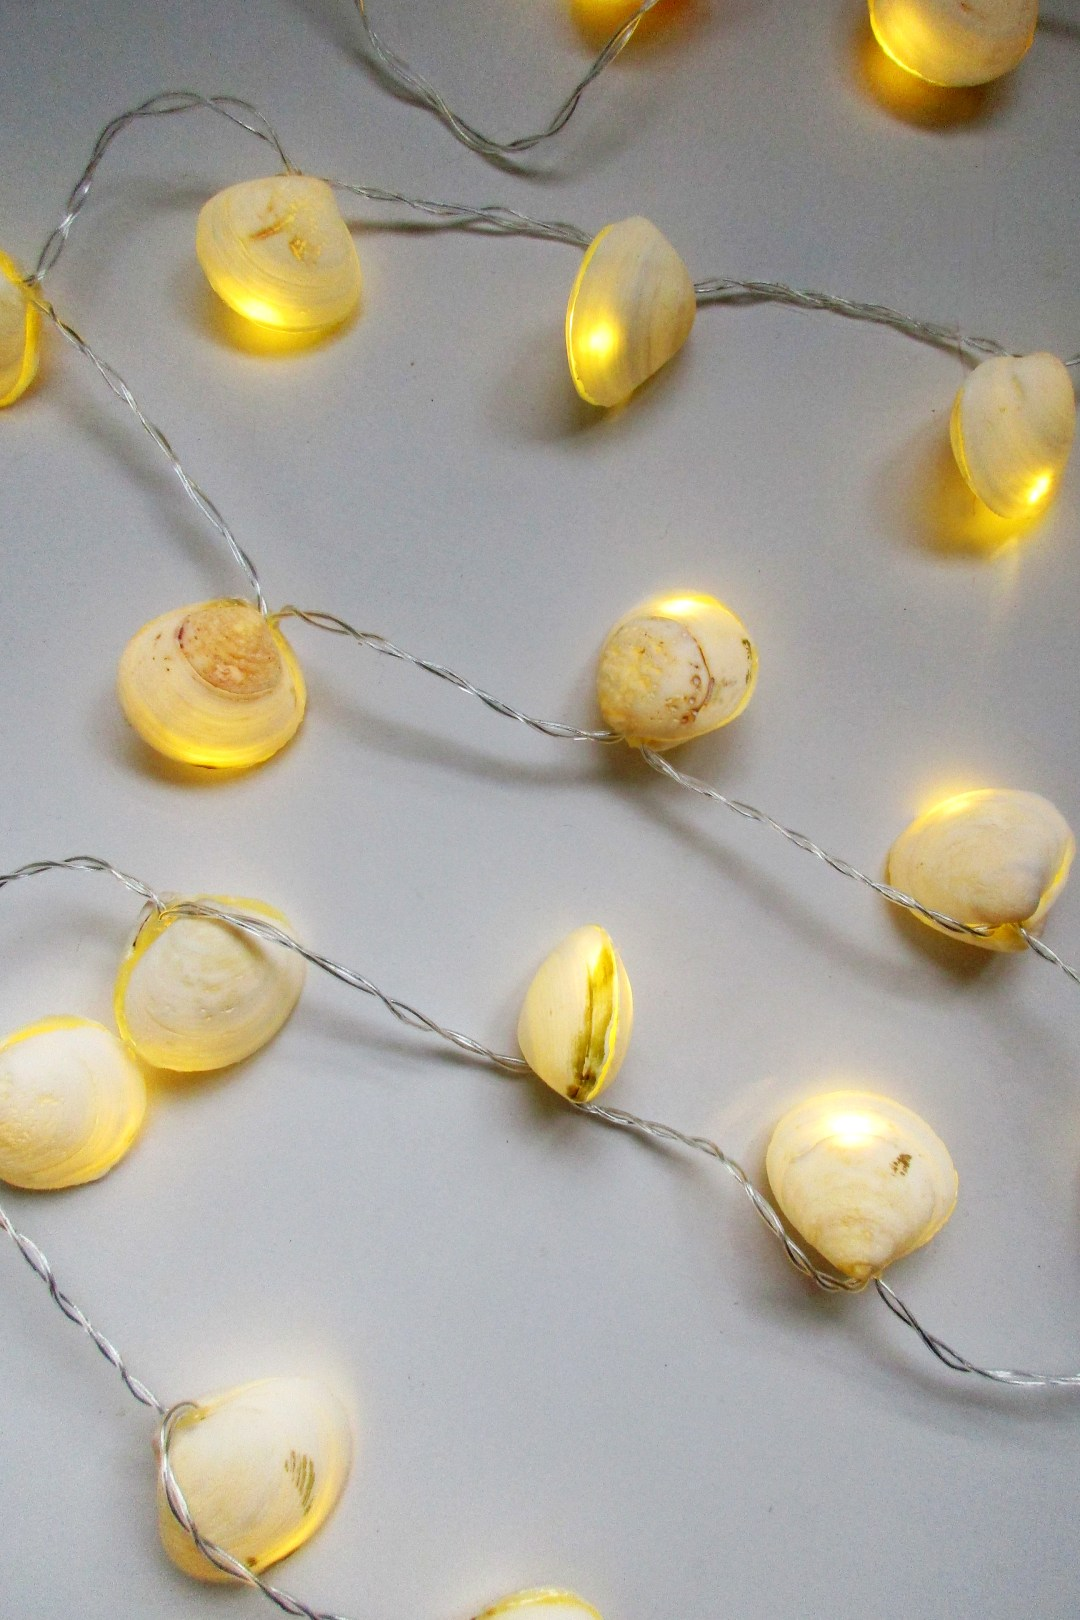 Diy Construction String Lights : DIY SEASHELL STRING LIGHTS LushZone